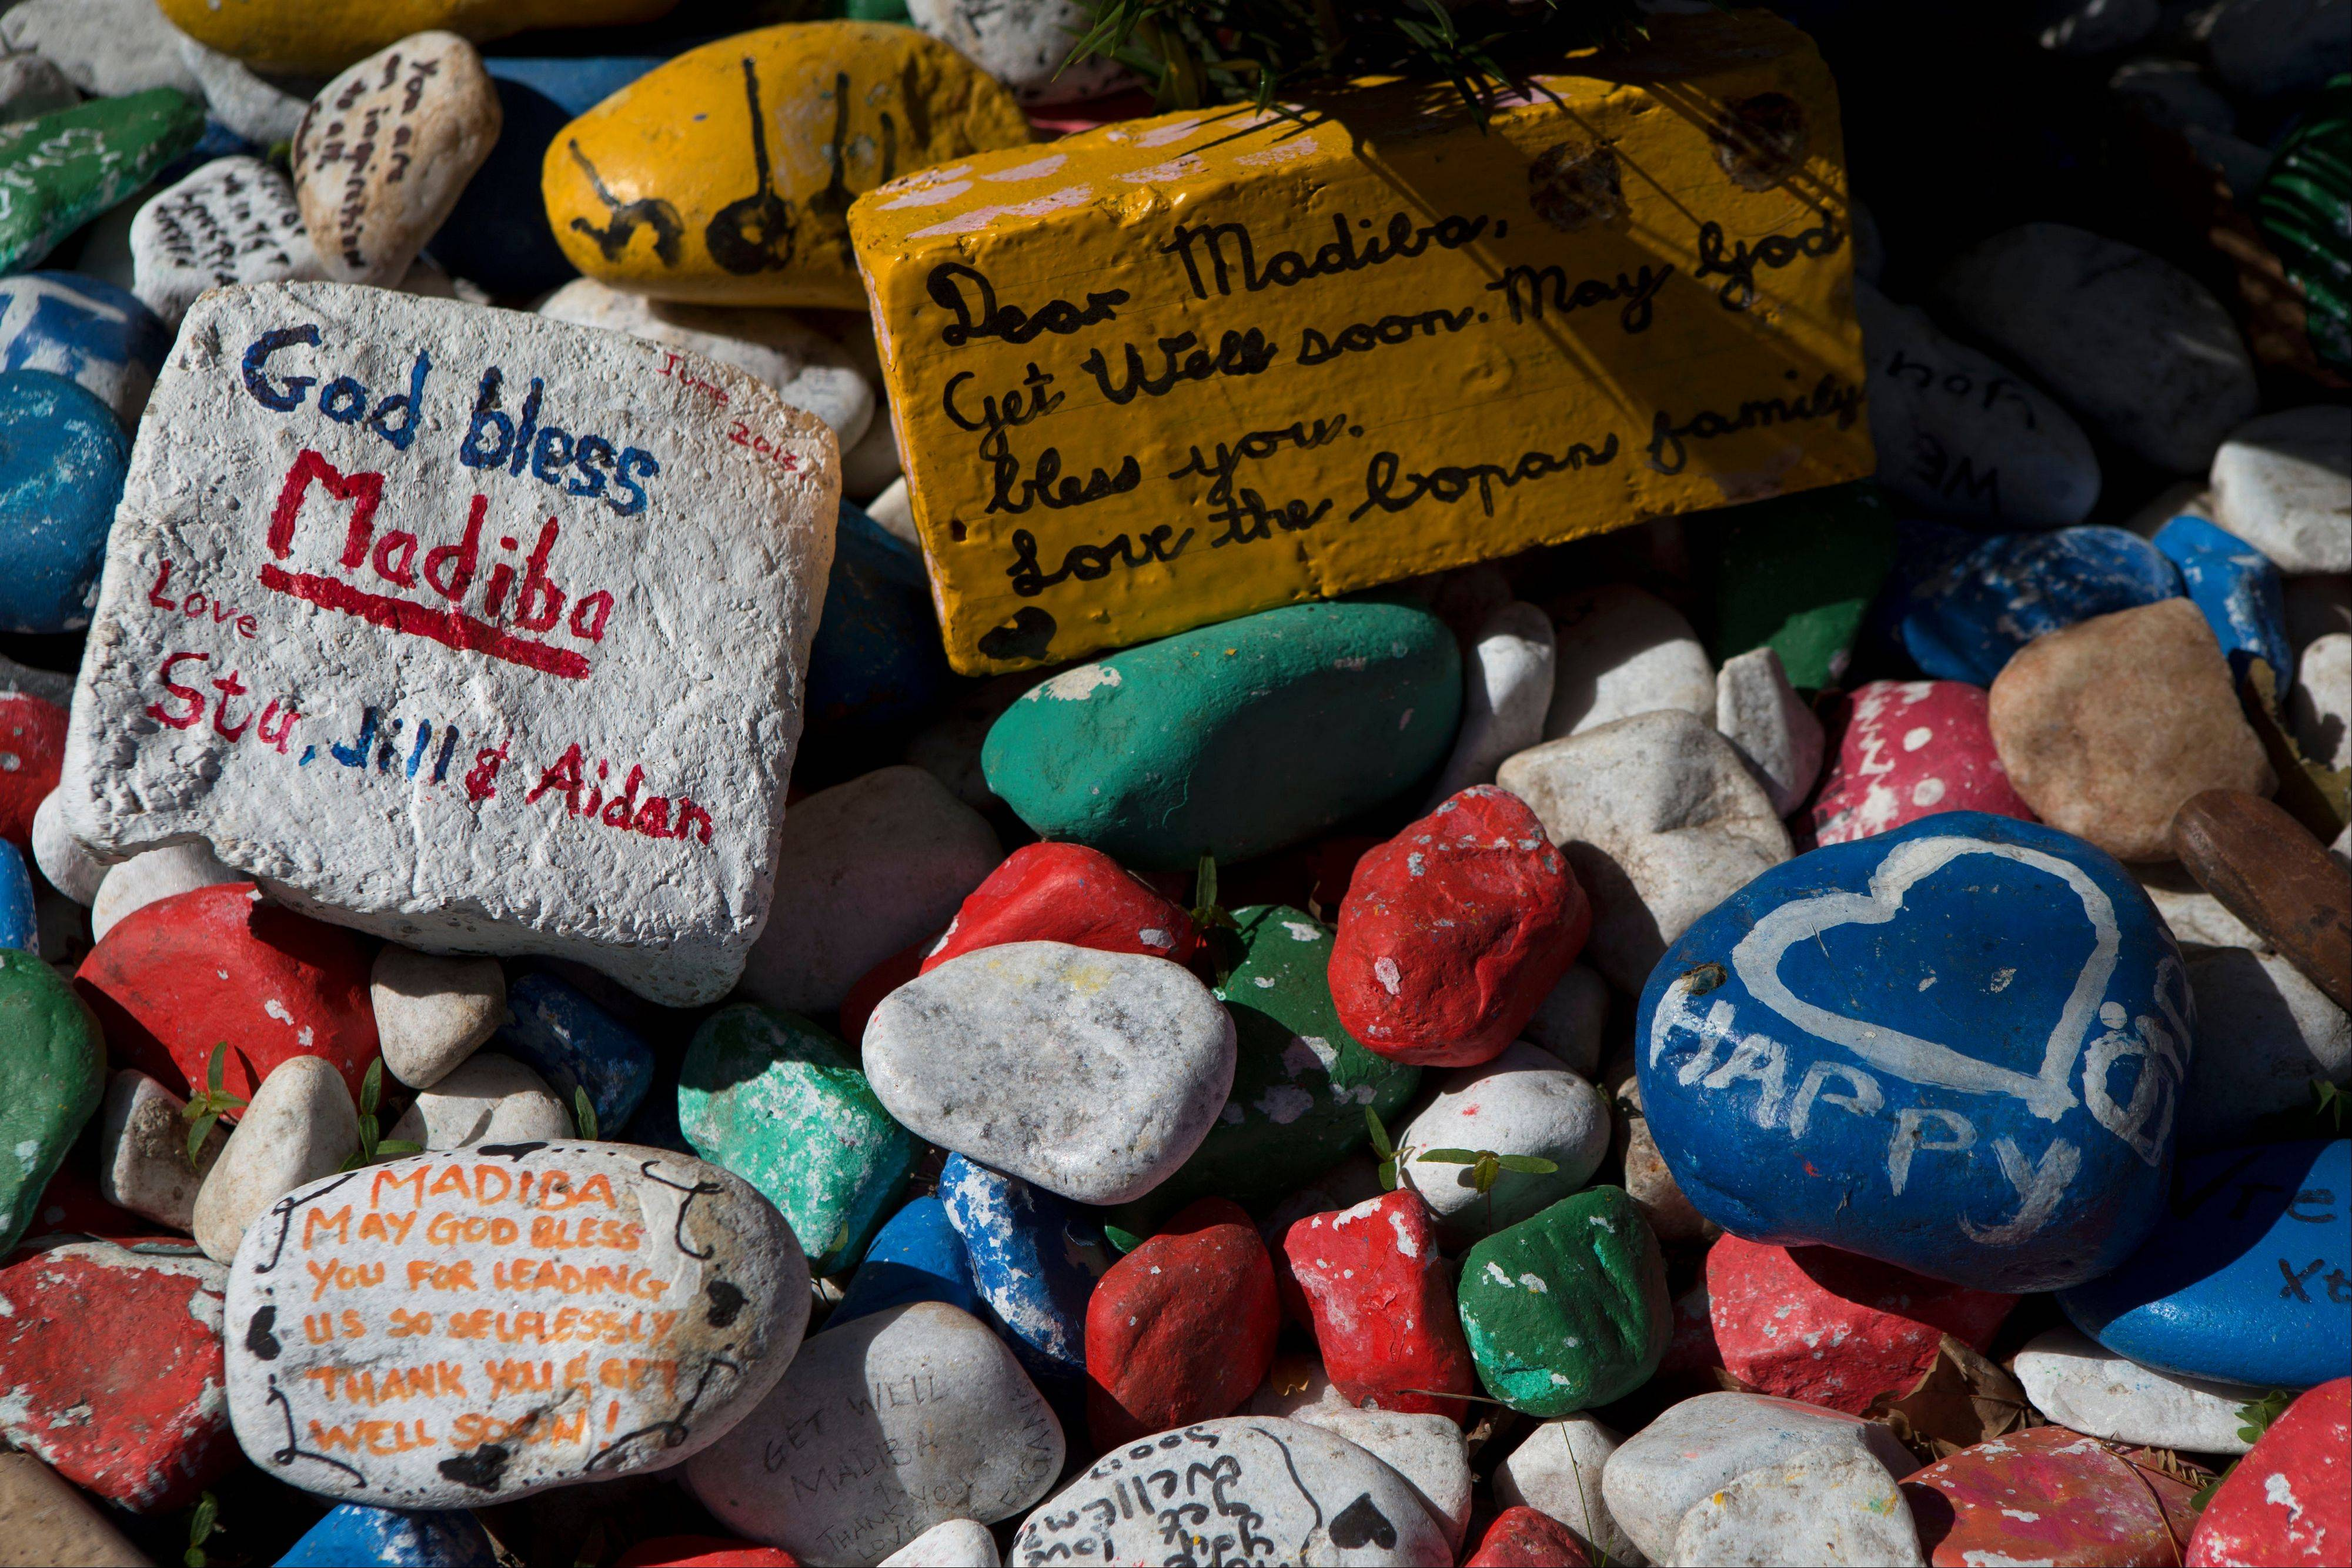 Stones painted with messages of support from well-wishers sit outside the residence of former South African President Nelson Mandela, where Mandela was continuing to receive medical care after leaving the hospital.